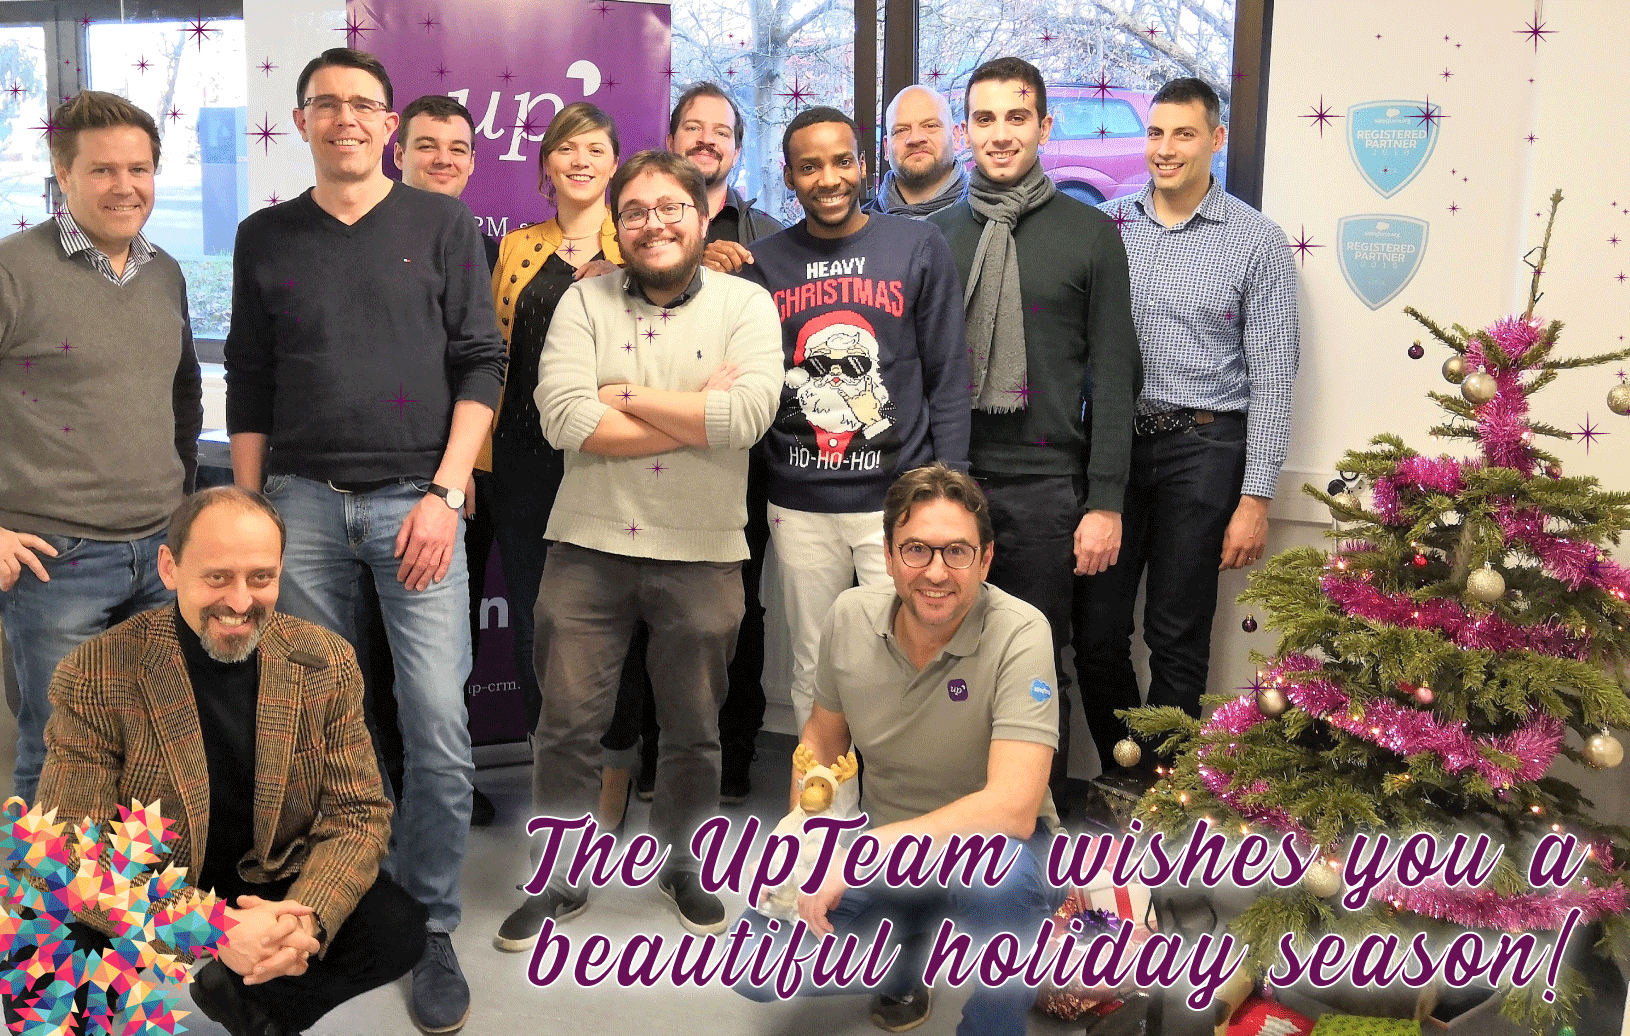 The UpCRM Team would like to wish you a great year ahead & e Gudde Rutsch!